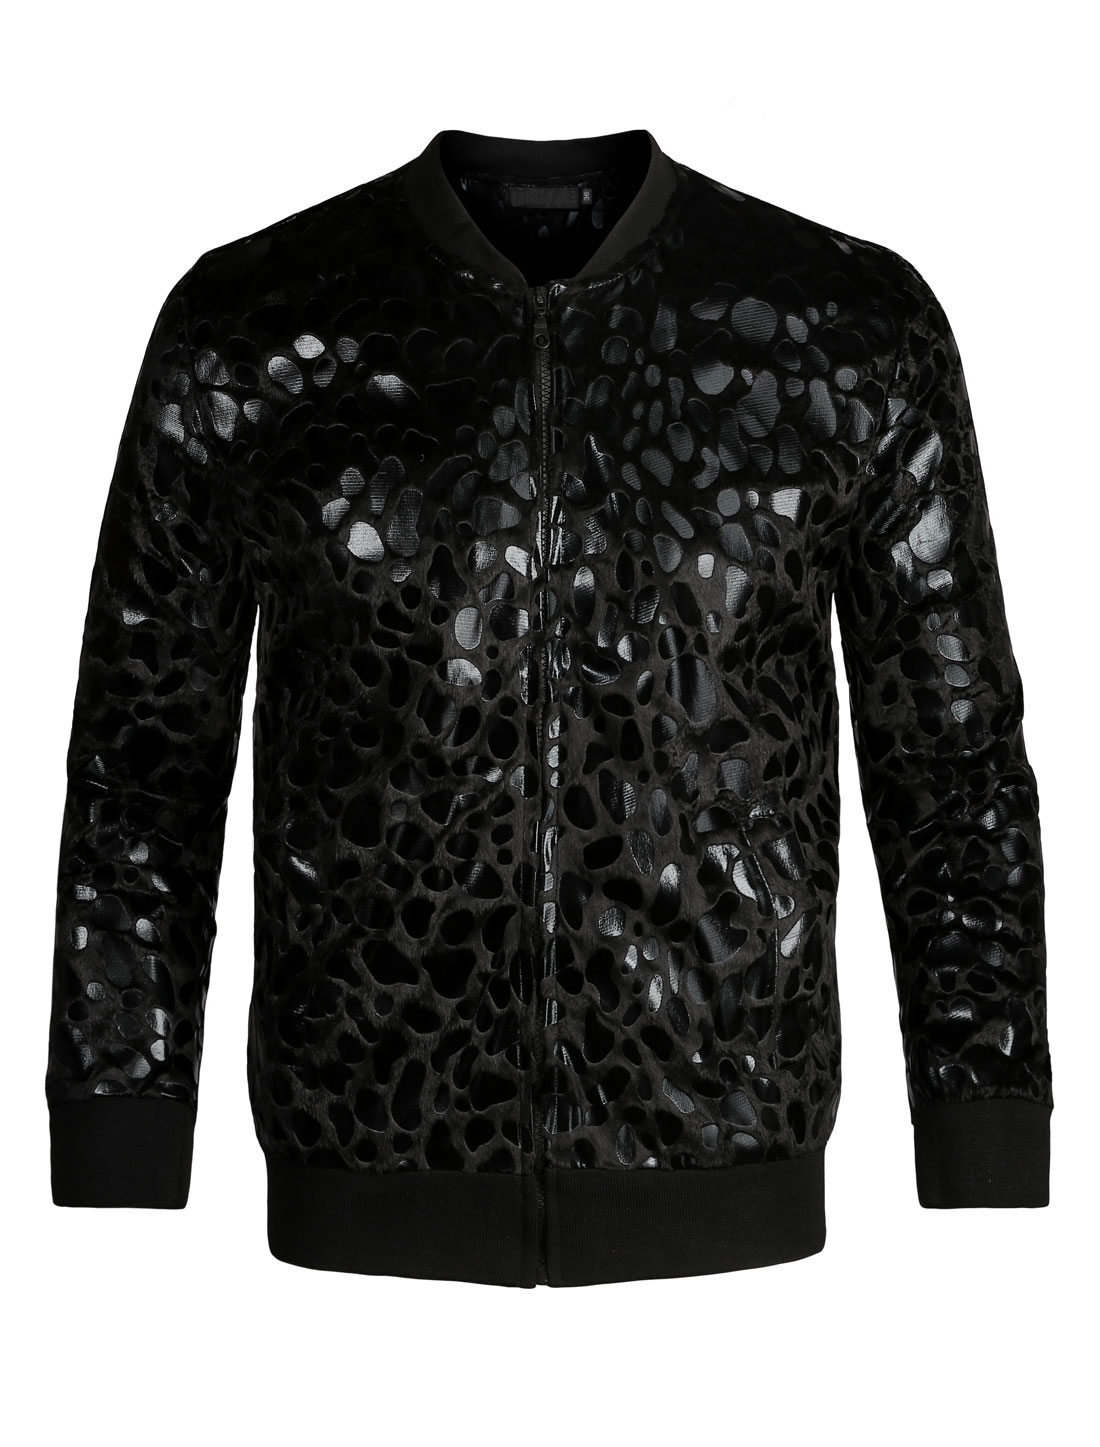 Men Fashion Ribbed Hem and Cuffs Allover Leopard Print Casual Jacket Black L